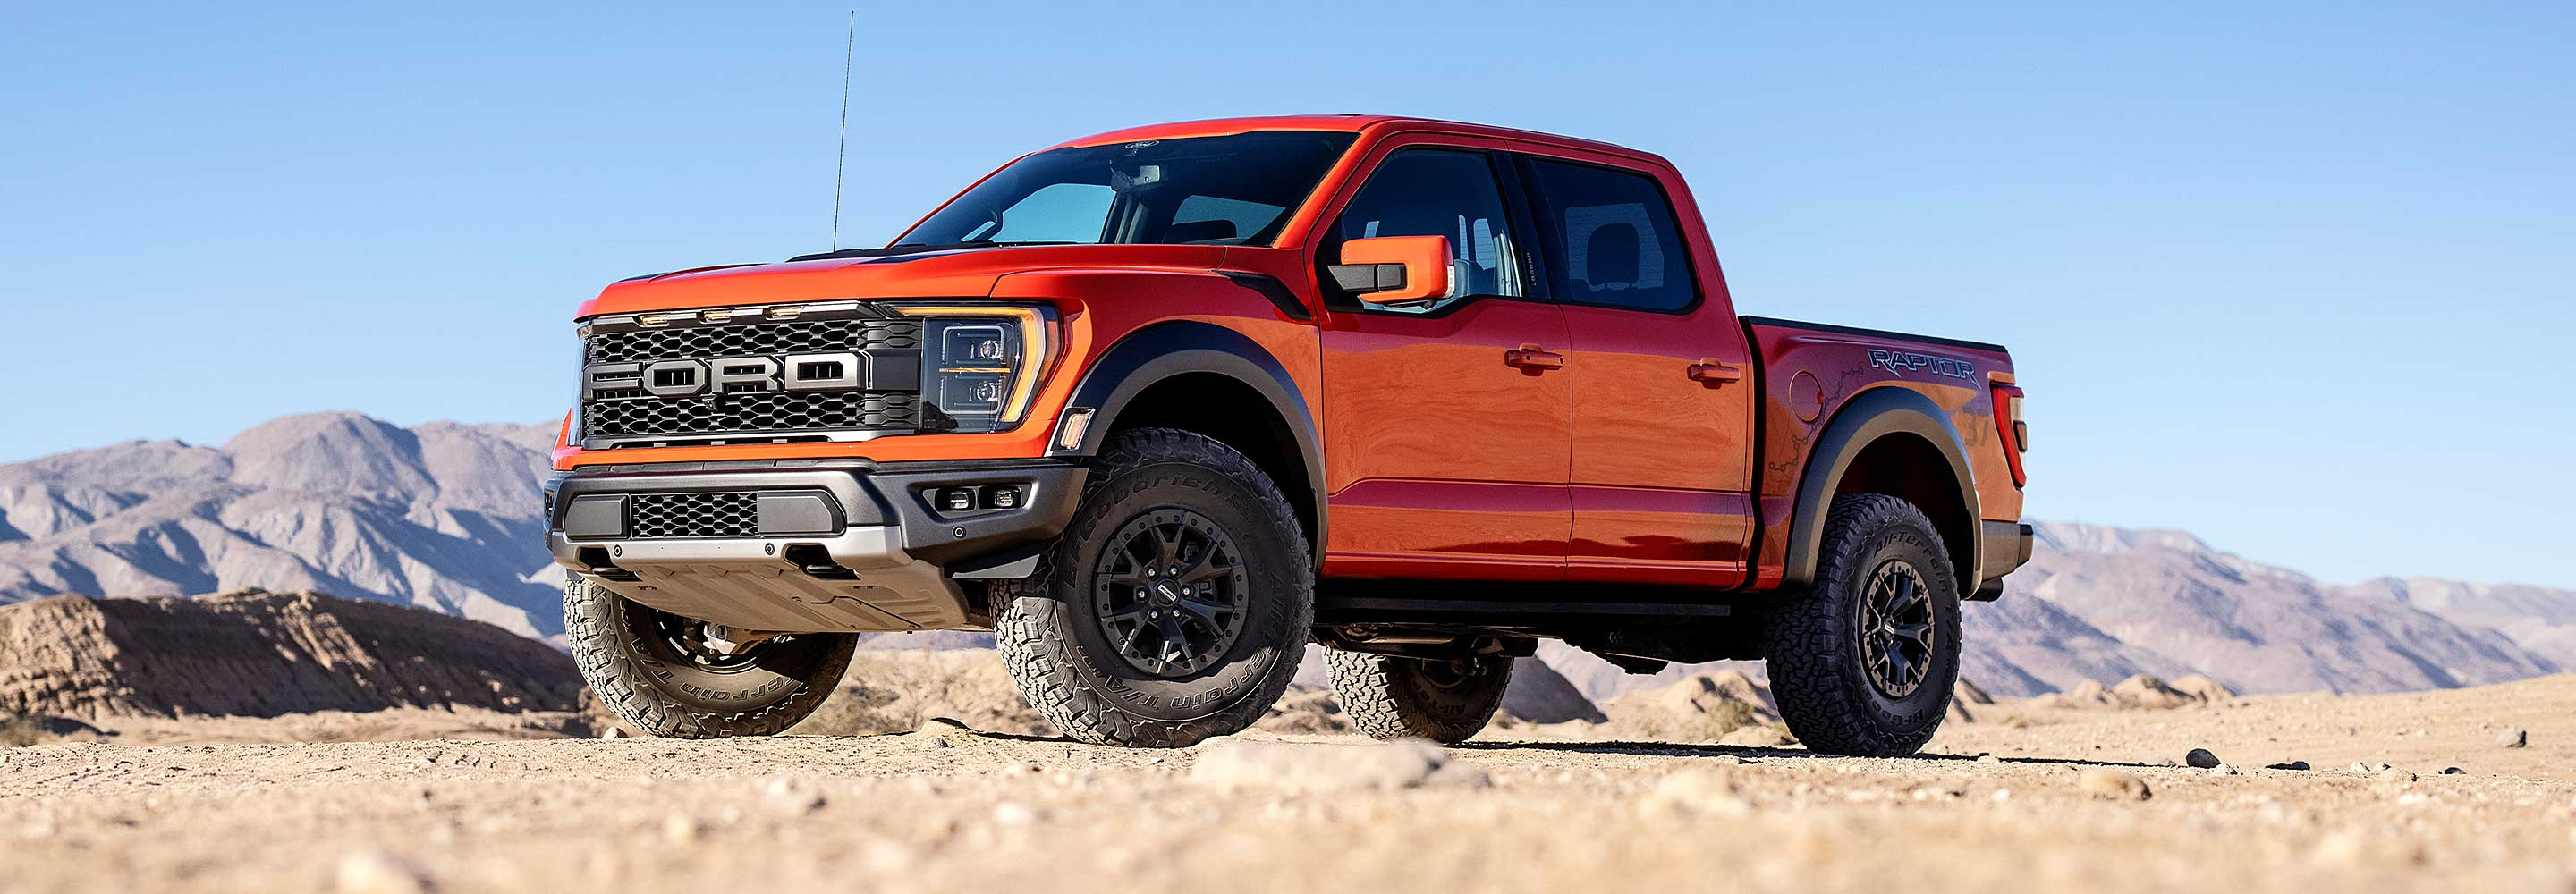 The 2021 Ford F-150 Raptor is Coming